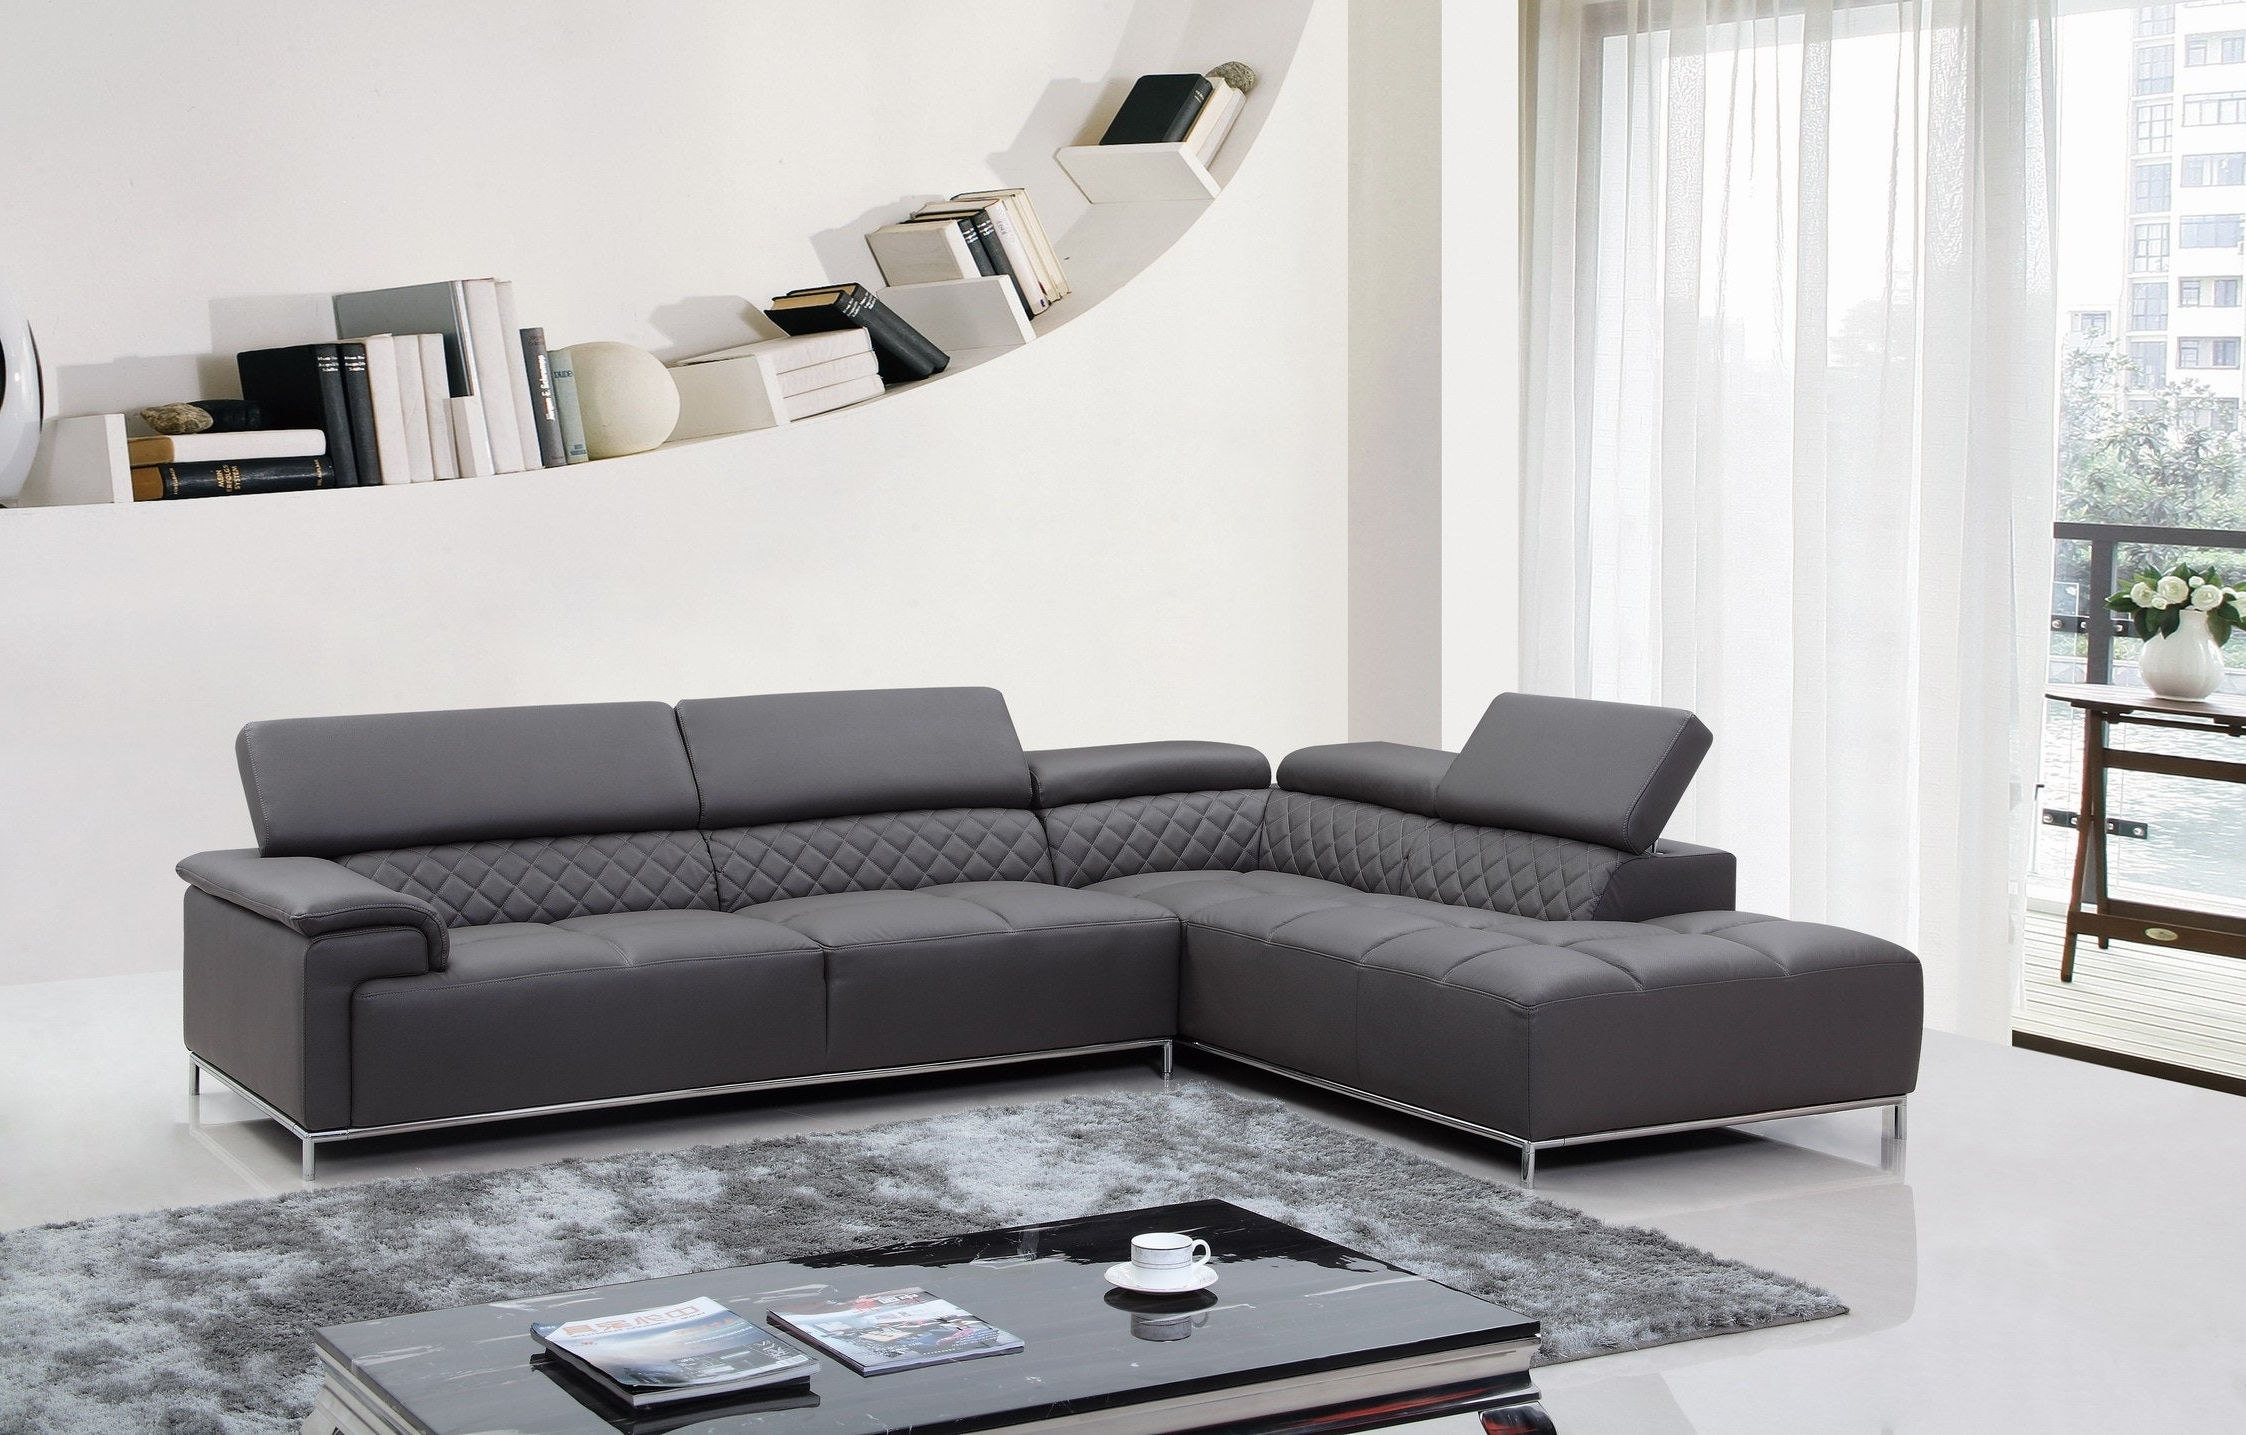 Sectional Sofas Under 600 Pertaining To Famous Furniture : Awesome Cheap Sectional Sofas Under 300 Best Of (View 13 of 15)